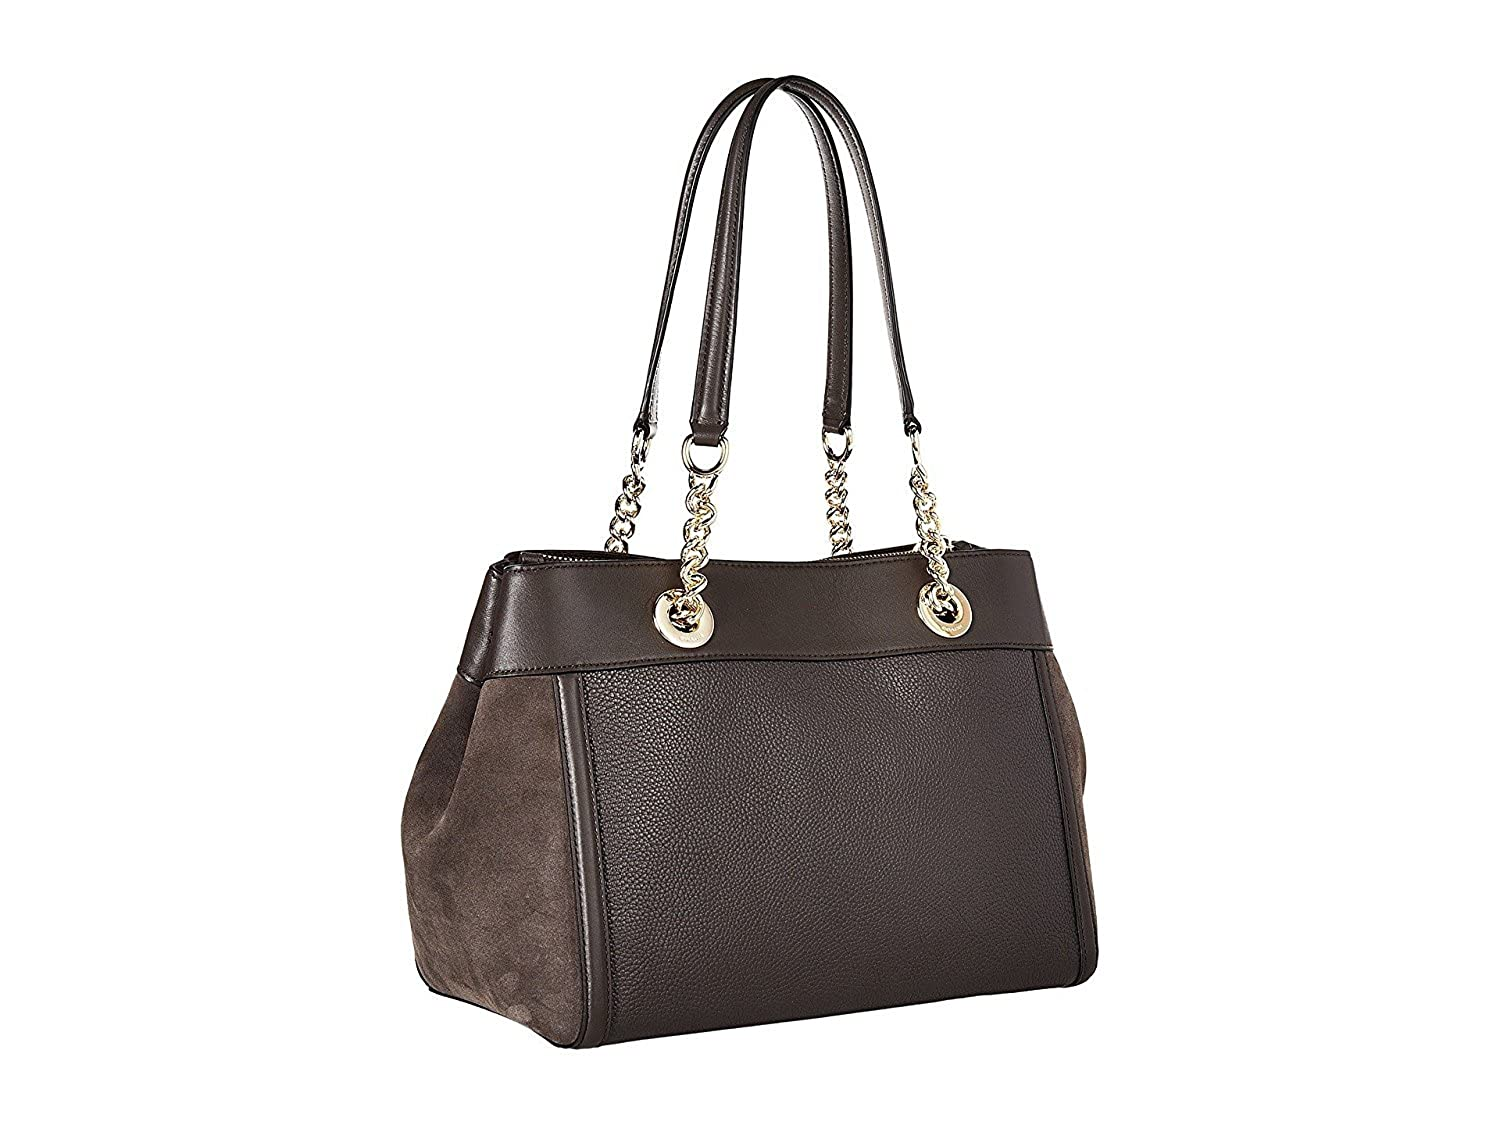 88b5cb1153fd COACH Women s Mixed Leather Turnlock Chain Edie Li Chestnut One Size   Amazon.co.uk  Shoes   Bags